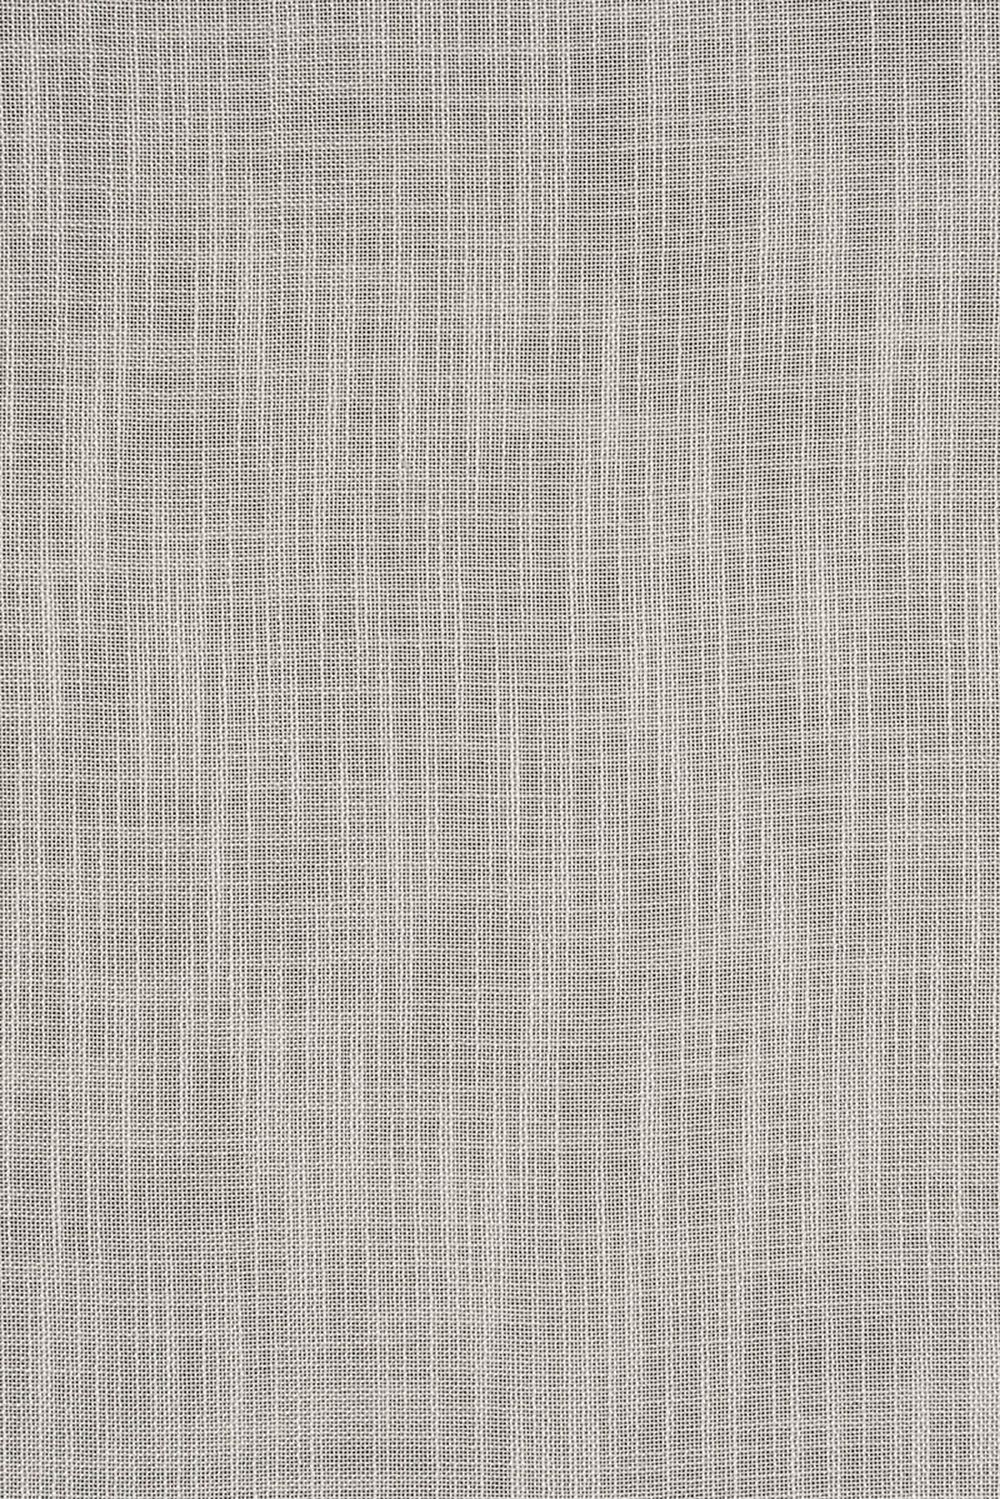 Photo of the fabric Coastal* Sand swatch by James Dunlop Essentials. Use for Curtains. Style of Plain